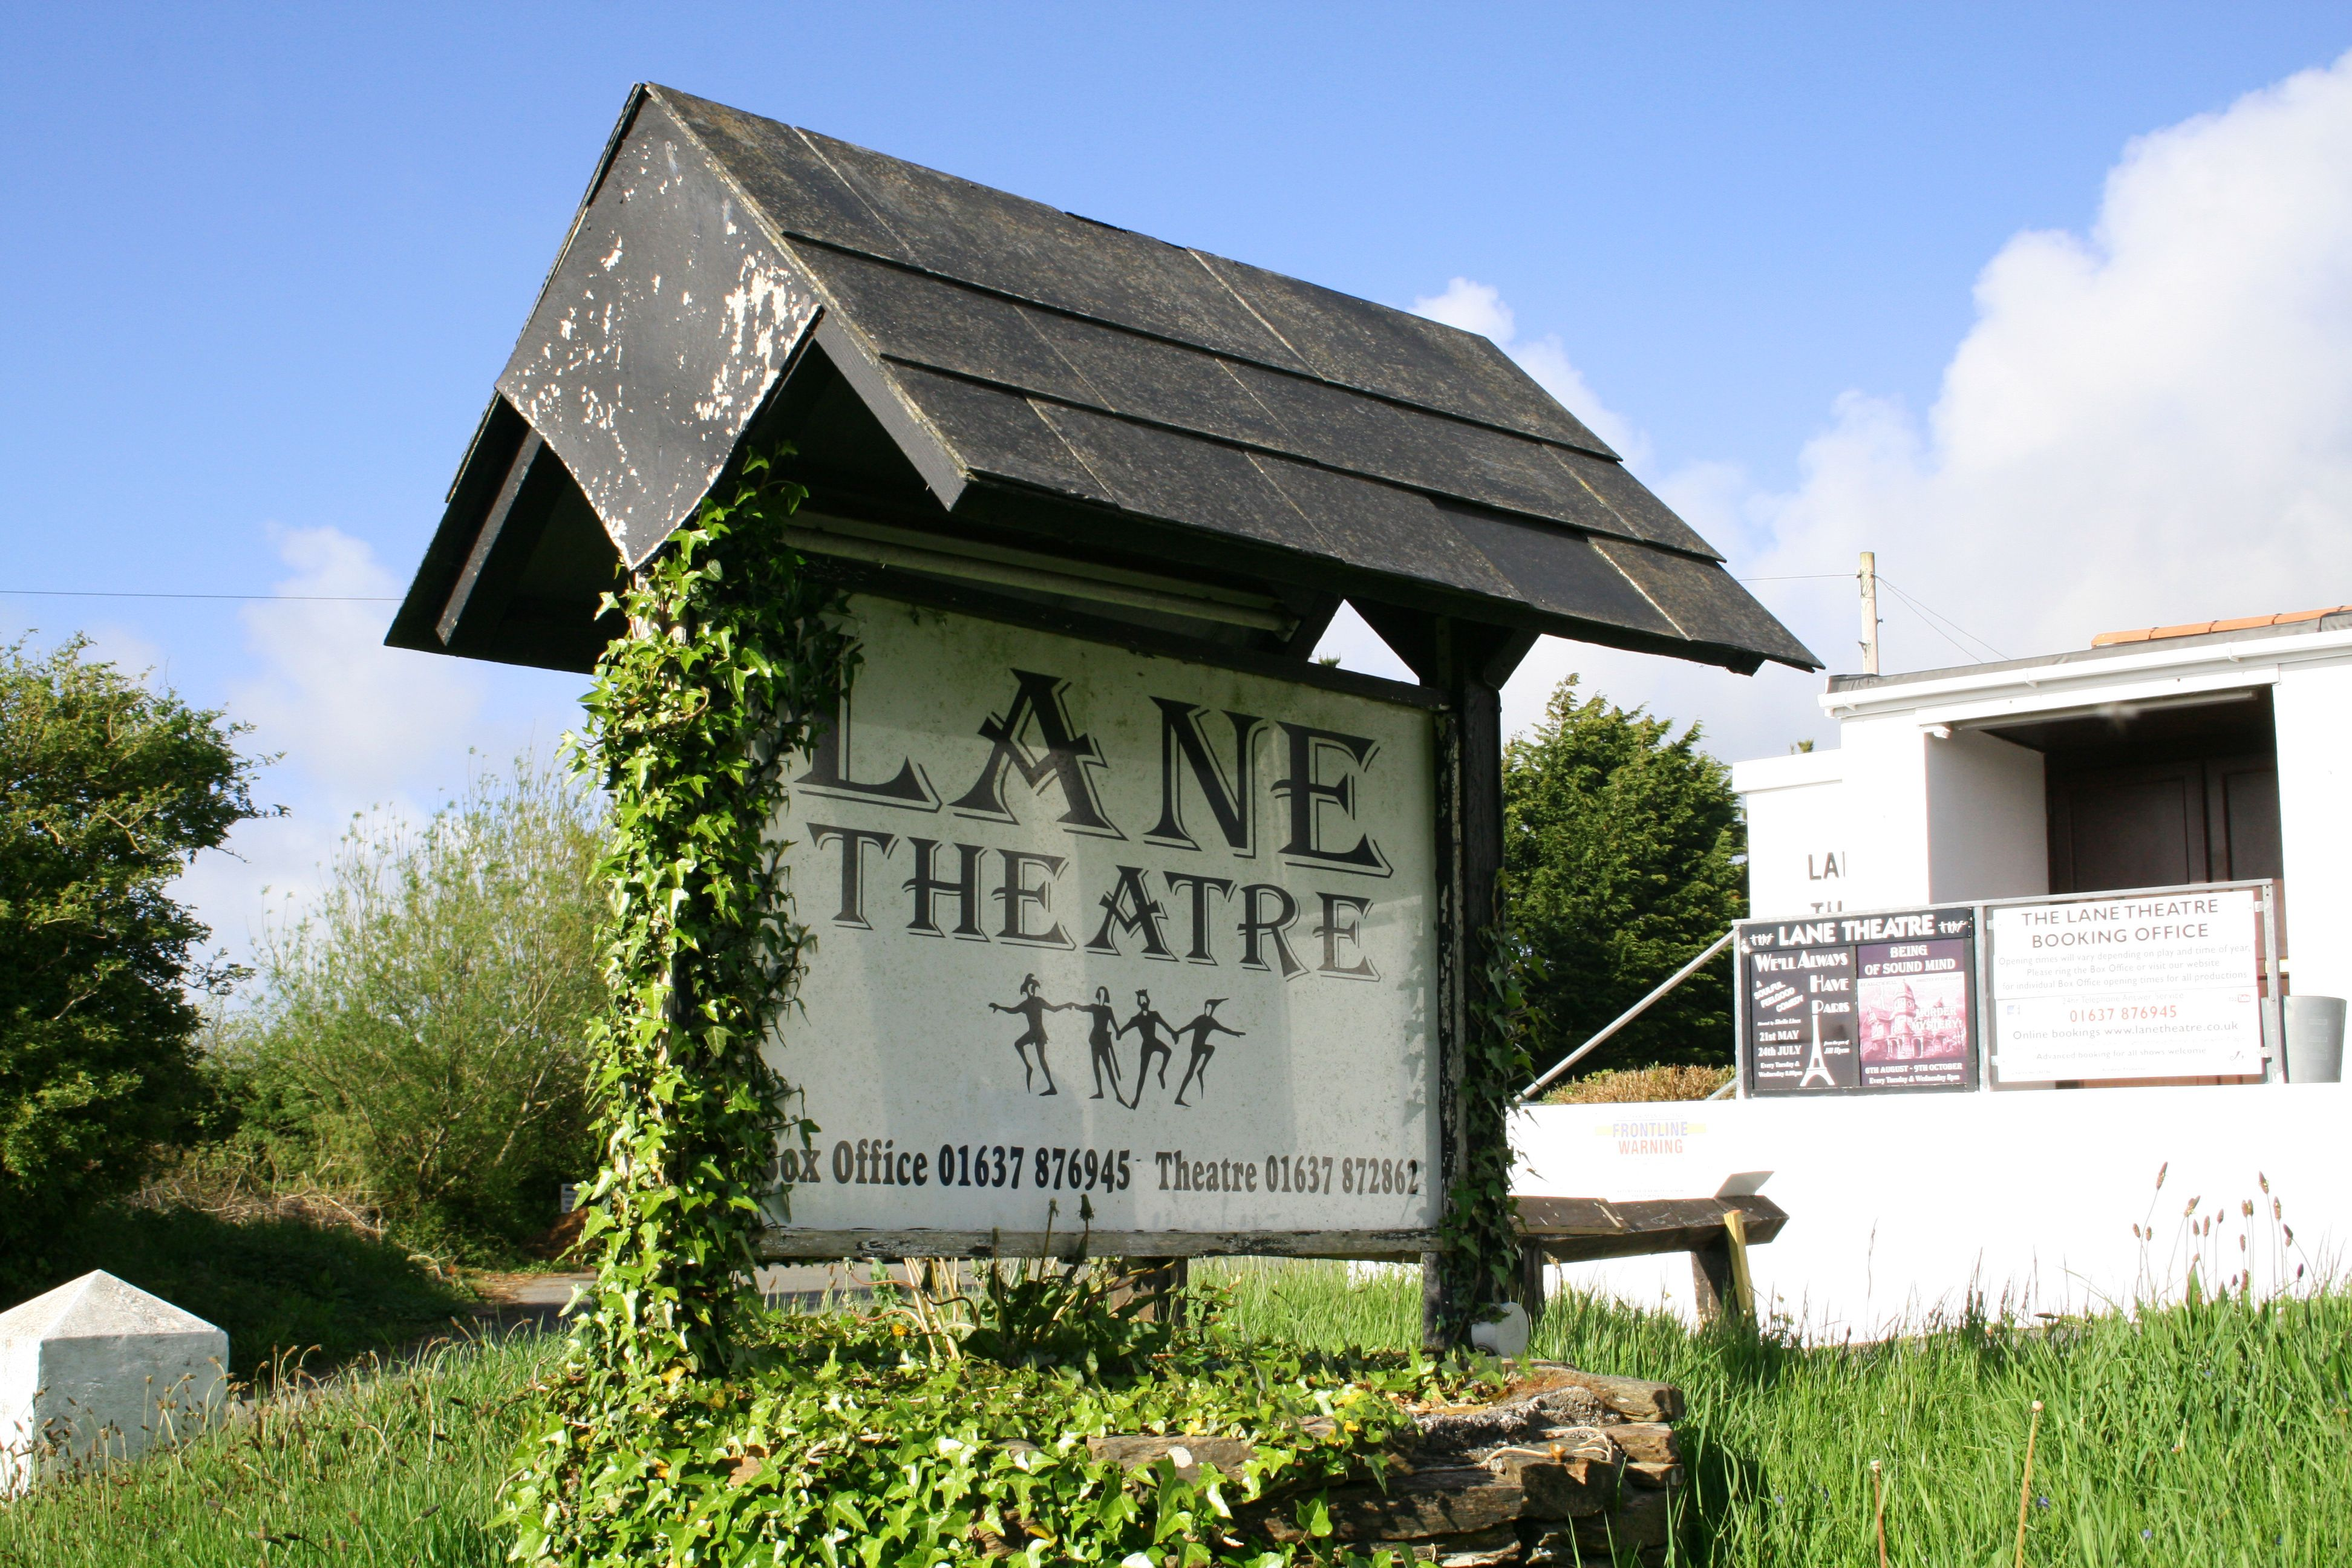 The Fabulous Lane Theatre In Newquay Is A Hidden Gem The Jewel In The Entertainment Crowd Of Newquay Lovetheatre Lovelane Newquay Cornwall Sandy Beaches